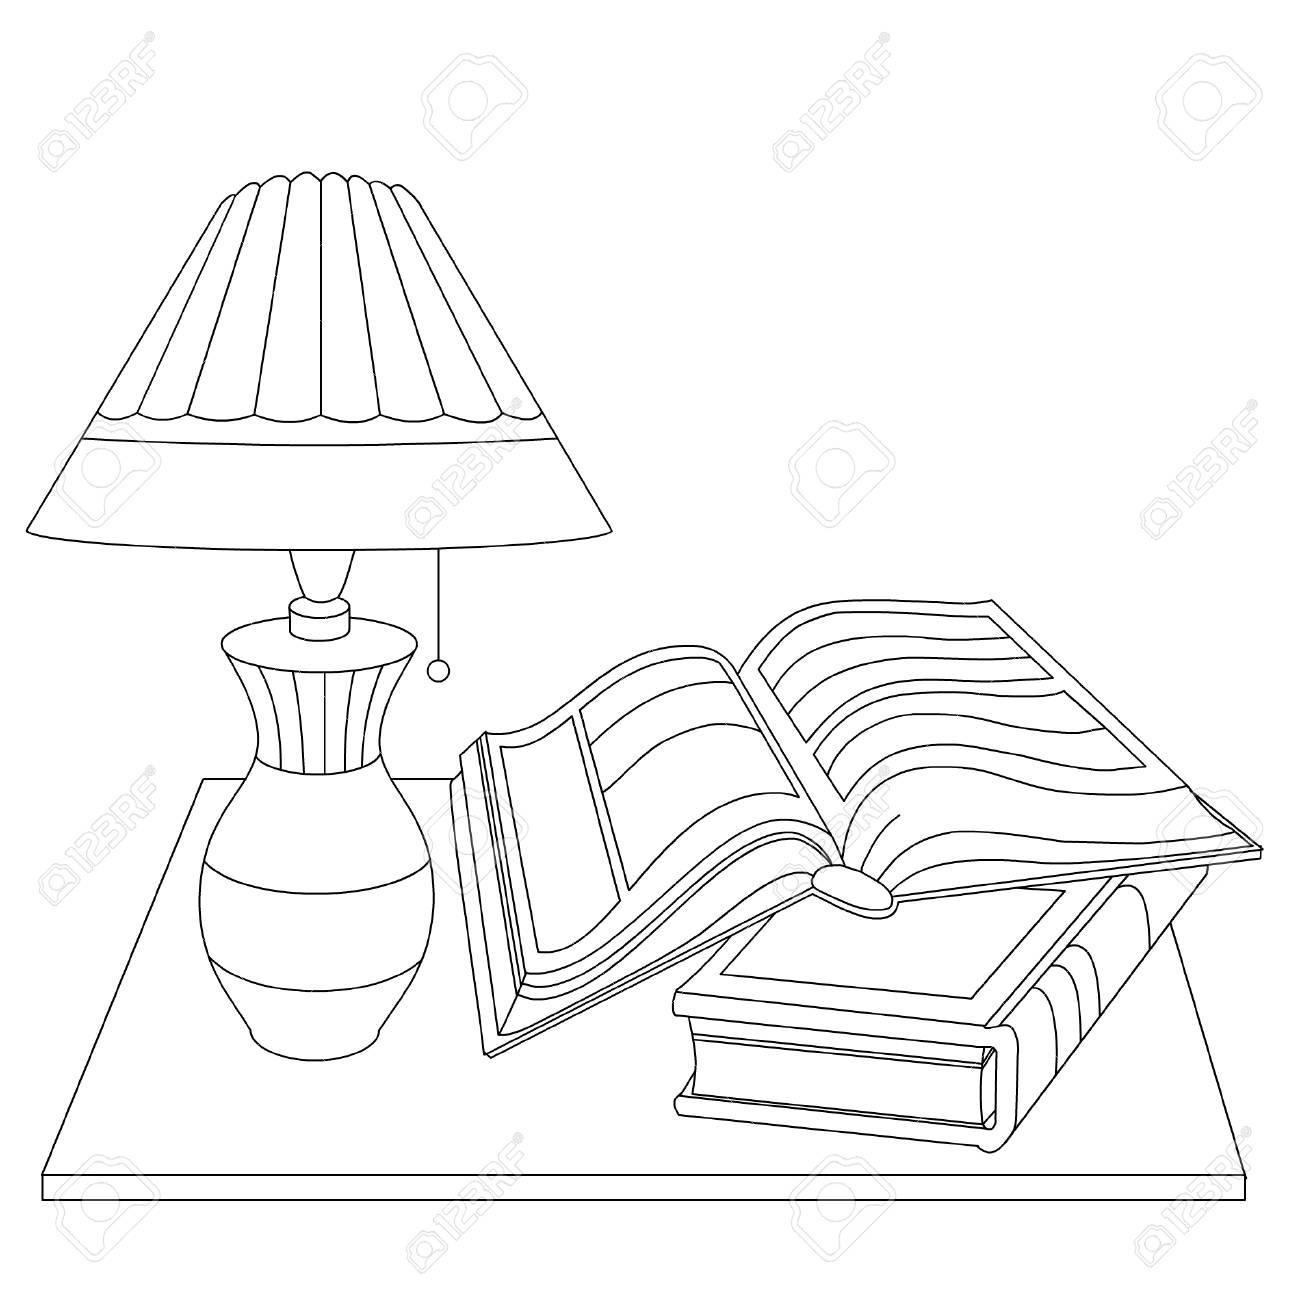 A simple lamp and two books on the table